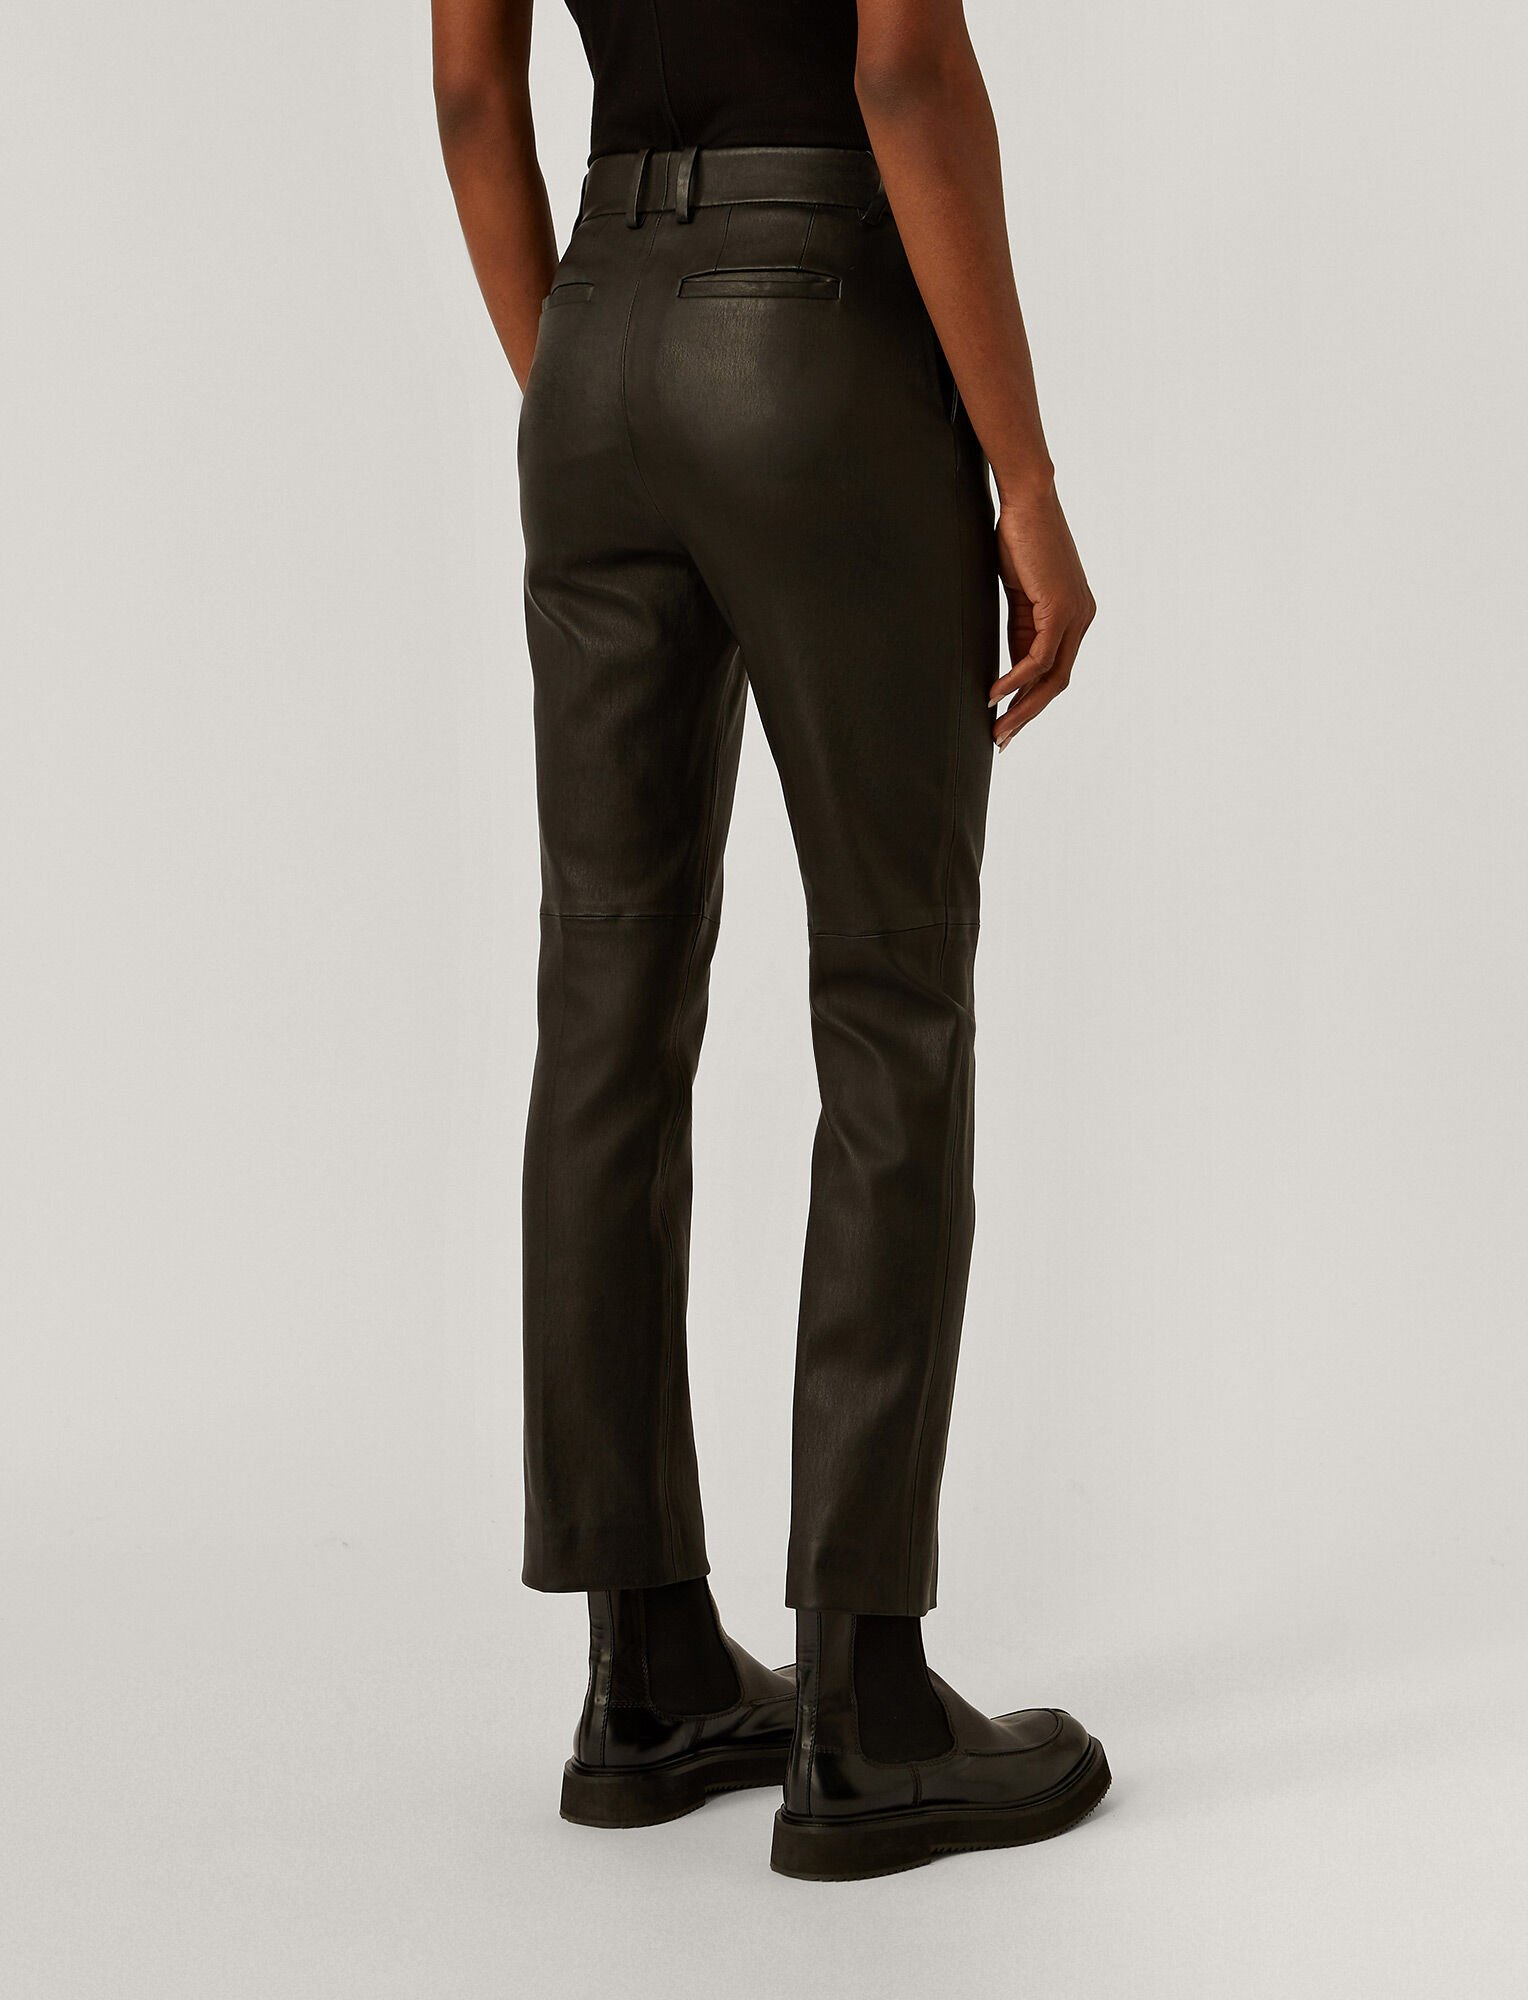 Joseph, Leather Stretch Coleman Trousers, in Black